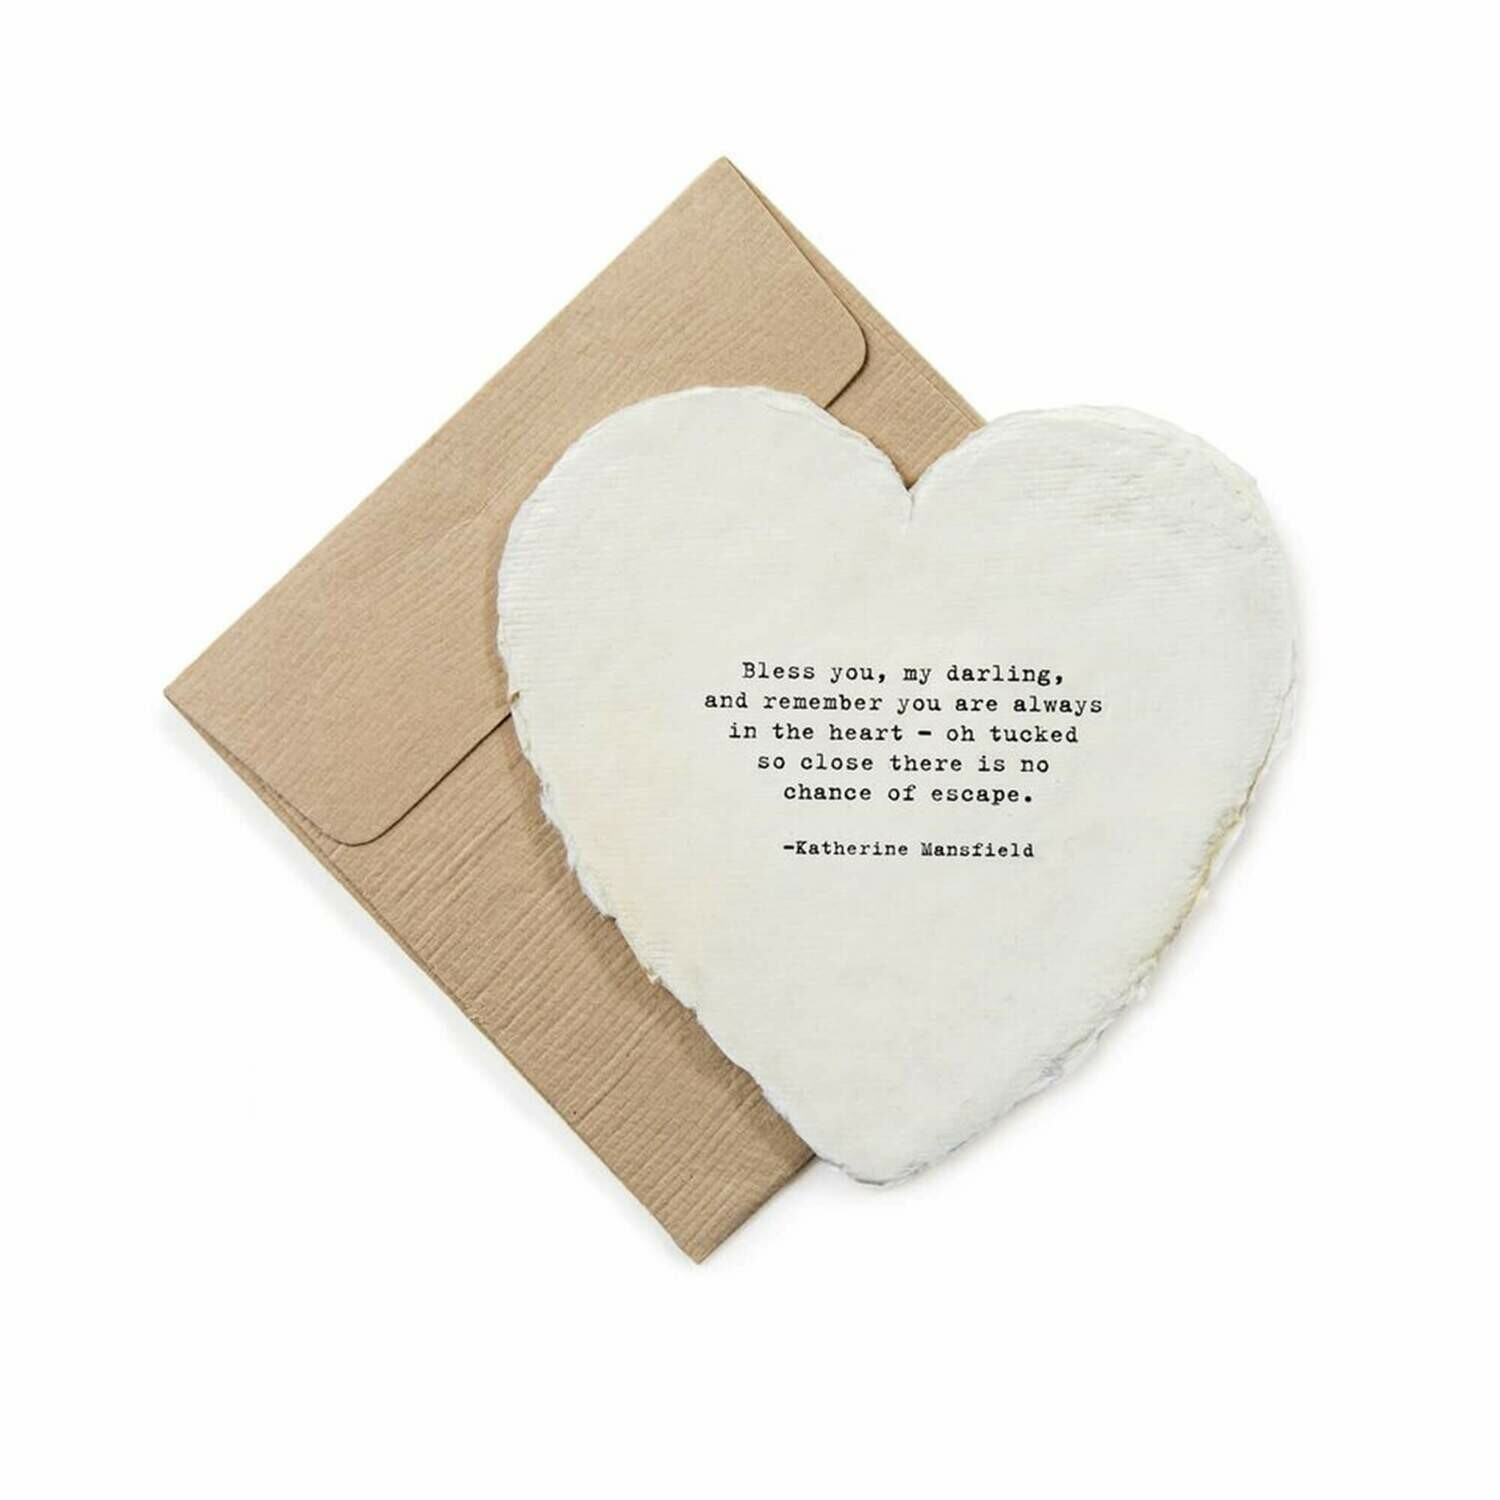 Mini Heart Shaped Card & Envelope-Bless you, my darling,